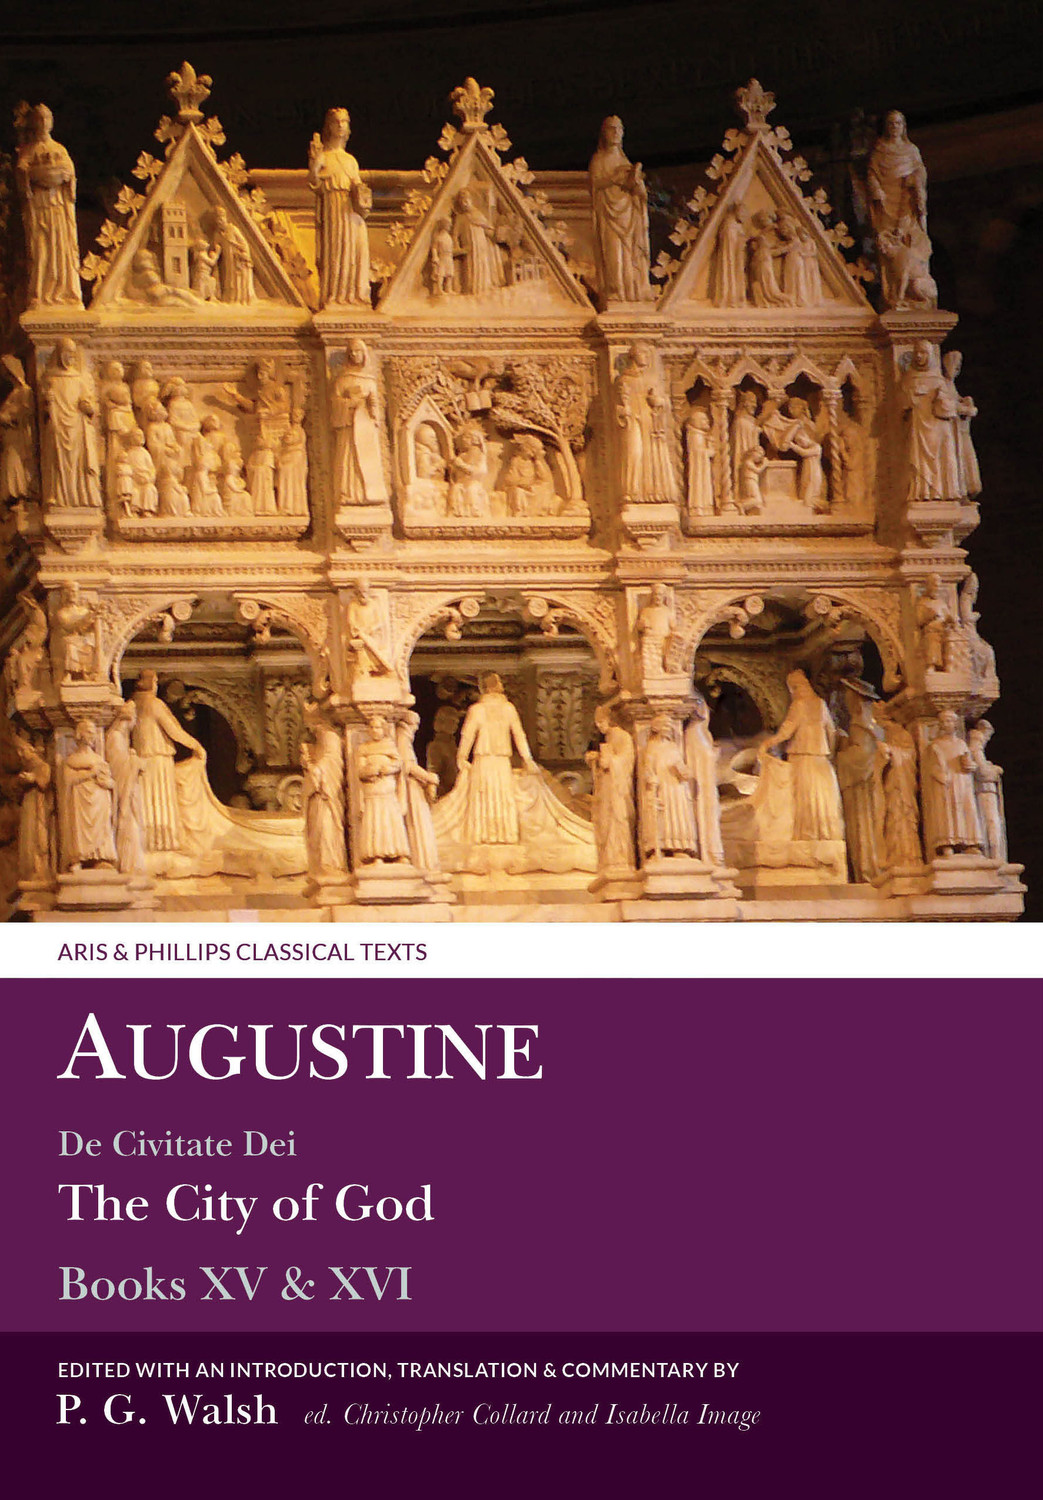 Augustine: De Civitate Dei Books XV and XVI